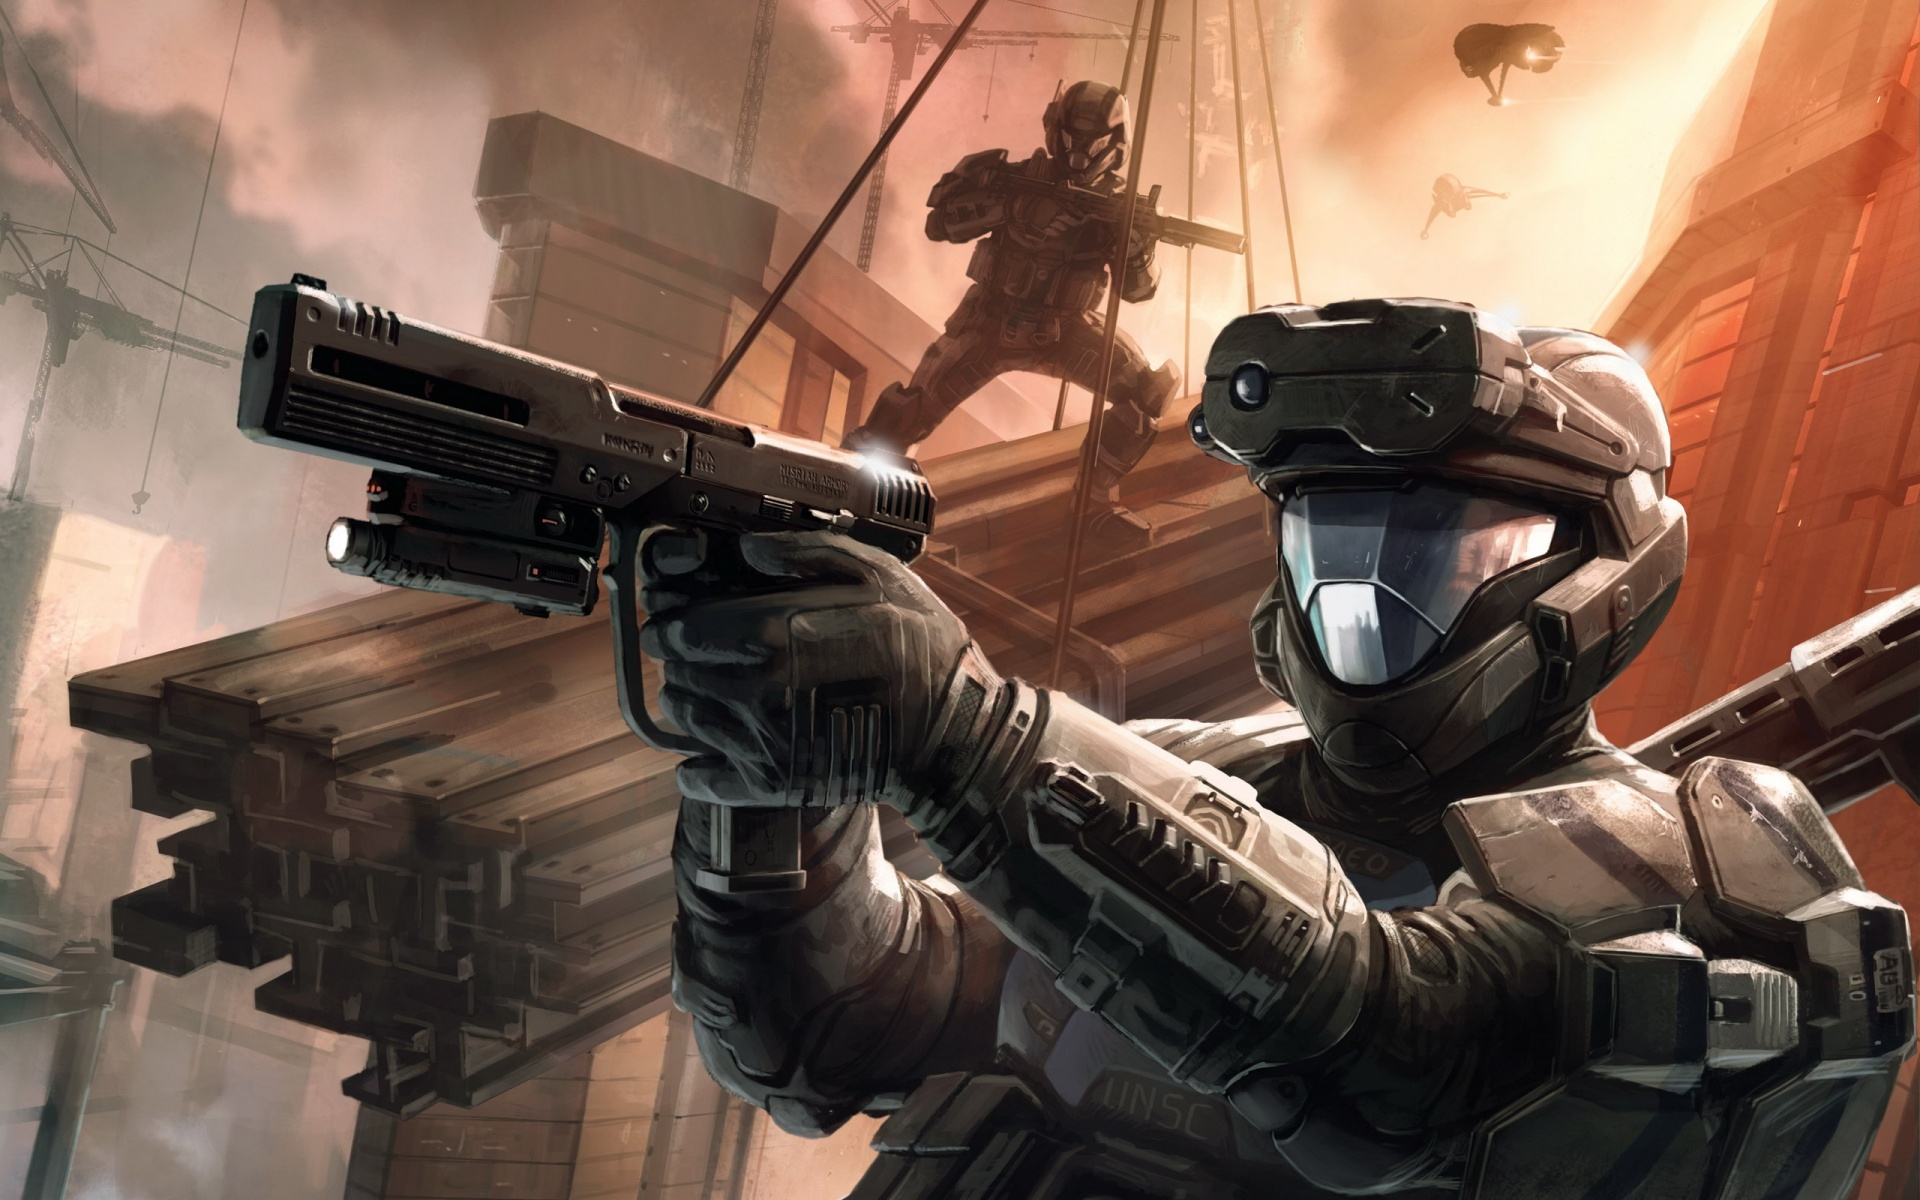 Halo 3 Hq Wallpapers In Jpg Format For Free Download